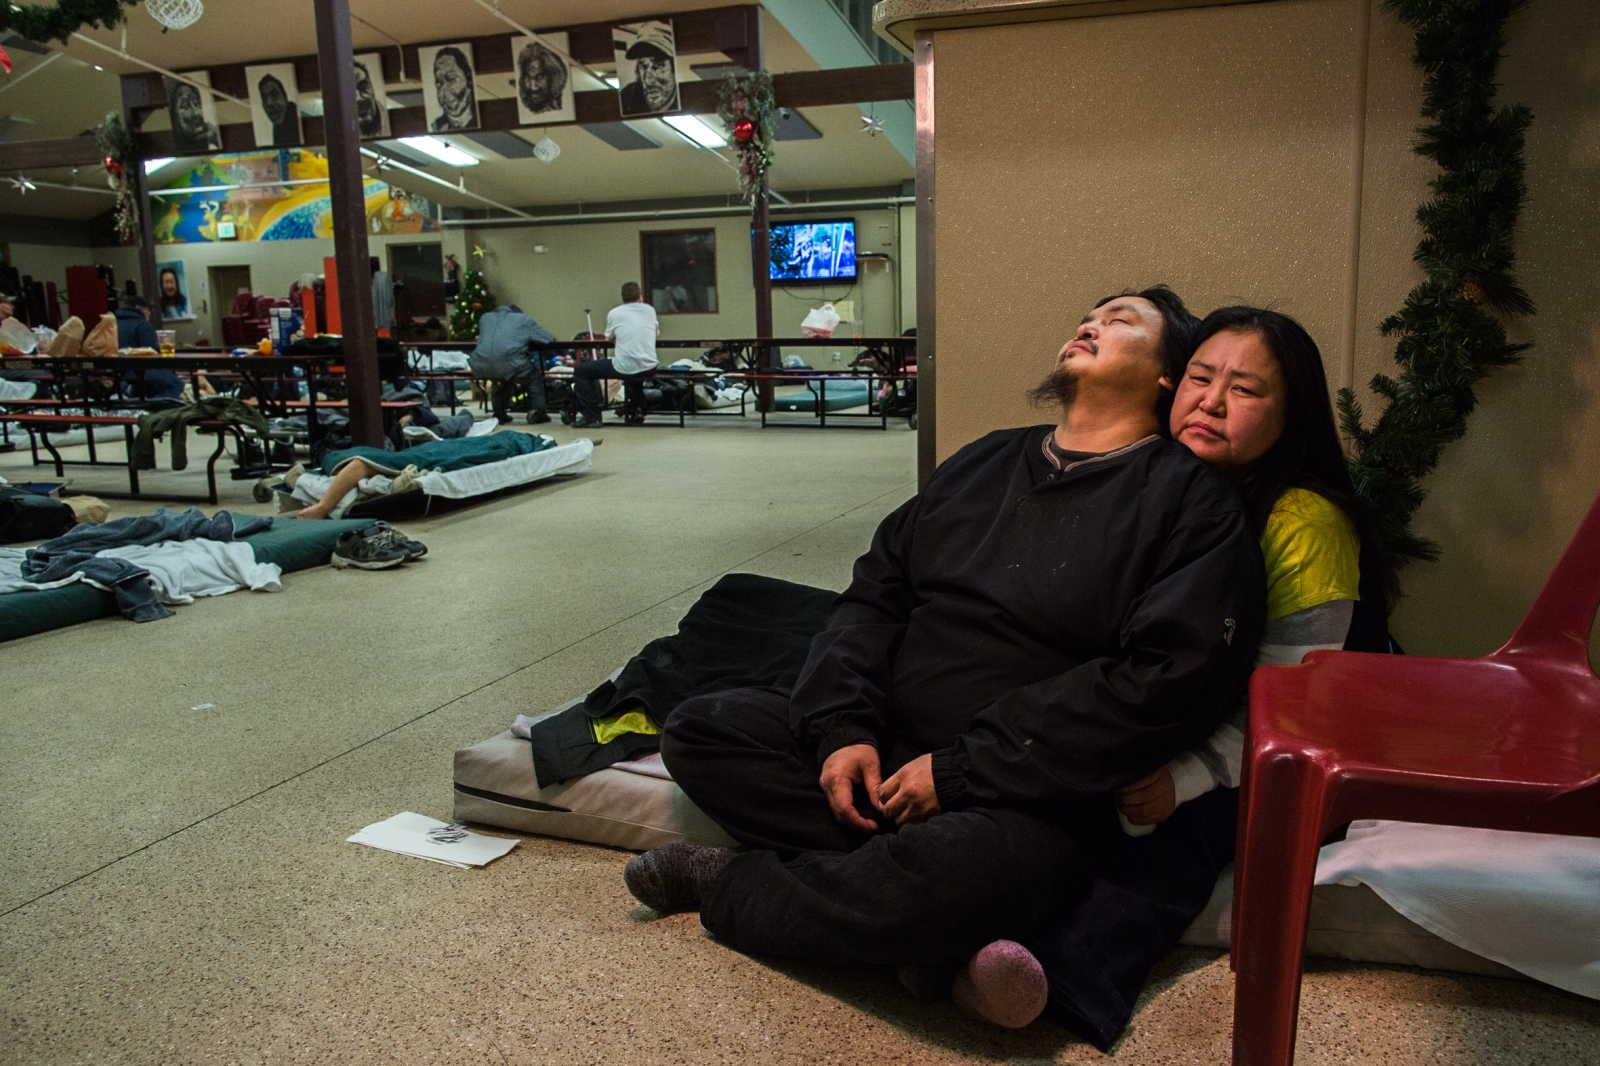 Steve Moses and Marie Nickolai sit on a mattress in Bean's Cafe, a soup kitchen which also serves as one of the men's overflow shelters in Anchorage when the shelter across the parking lot, Brother Francis Shelter, is full. Marie's half-brother, Jackie Amaktoolik, who was also homeless, died earlier that day in the parking lot. Due to the special circumstances, Bean's Cafe allowed Marie to stay the night on a mattress separated from the men's. Before lights out, however, Steven and Marie are kicked out of the shelter for drinking. For the Guardian .